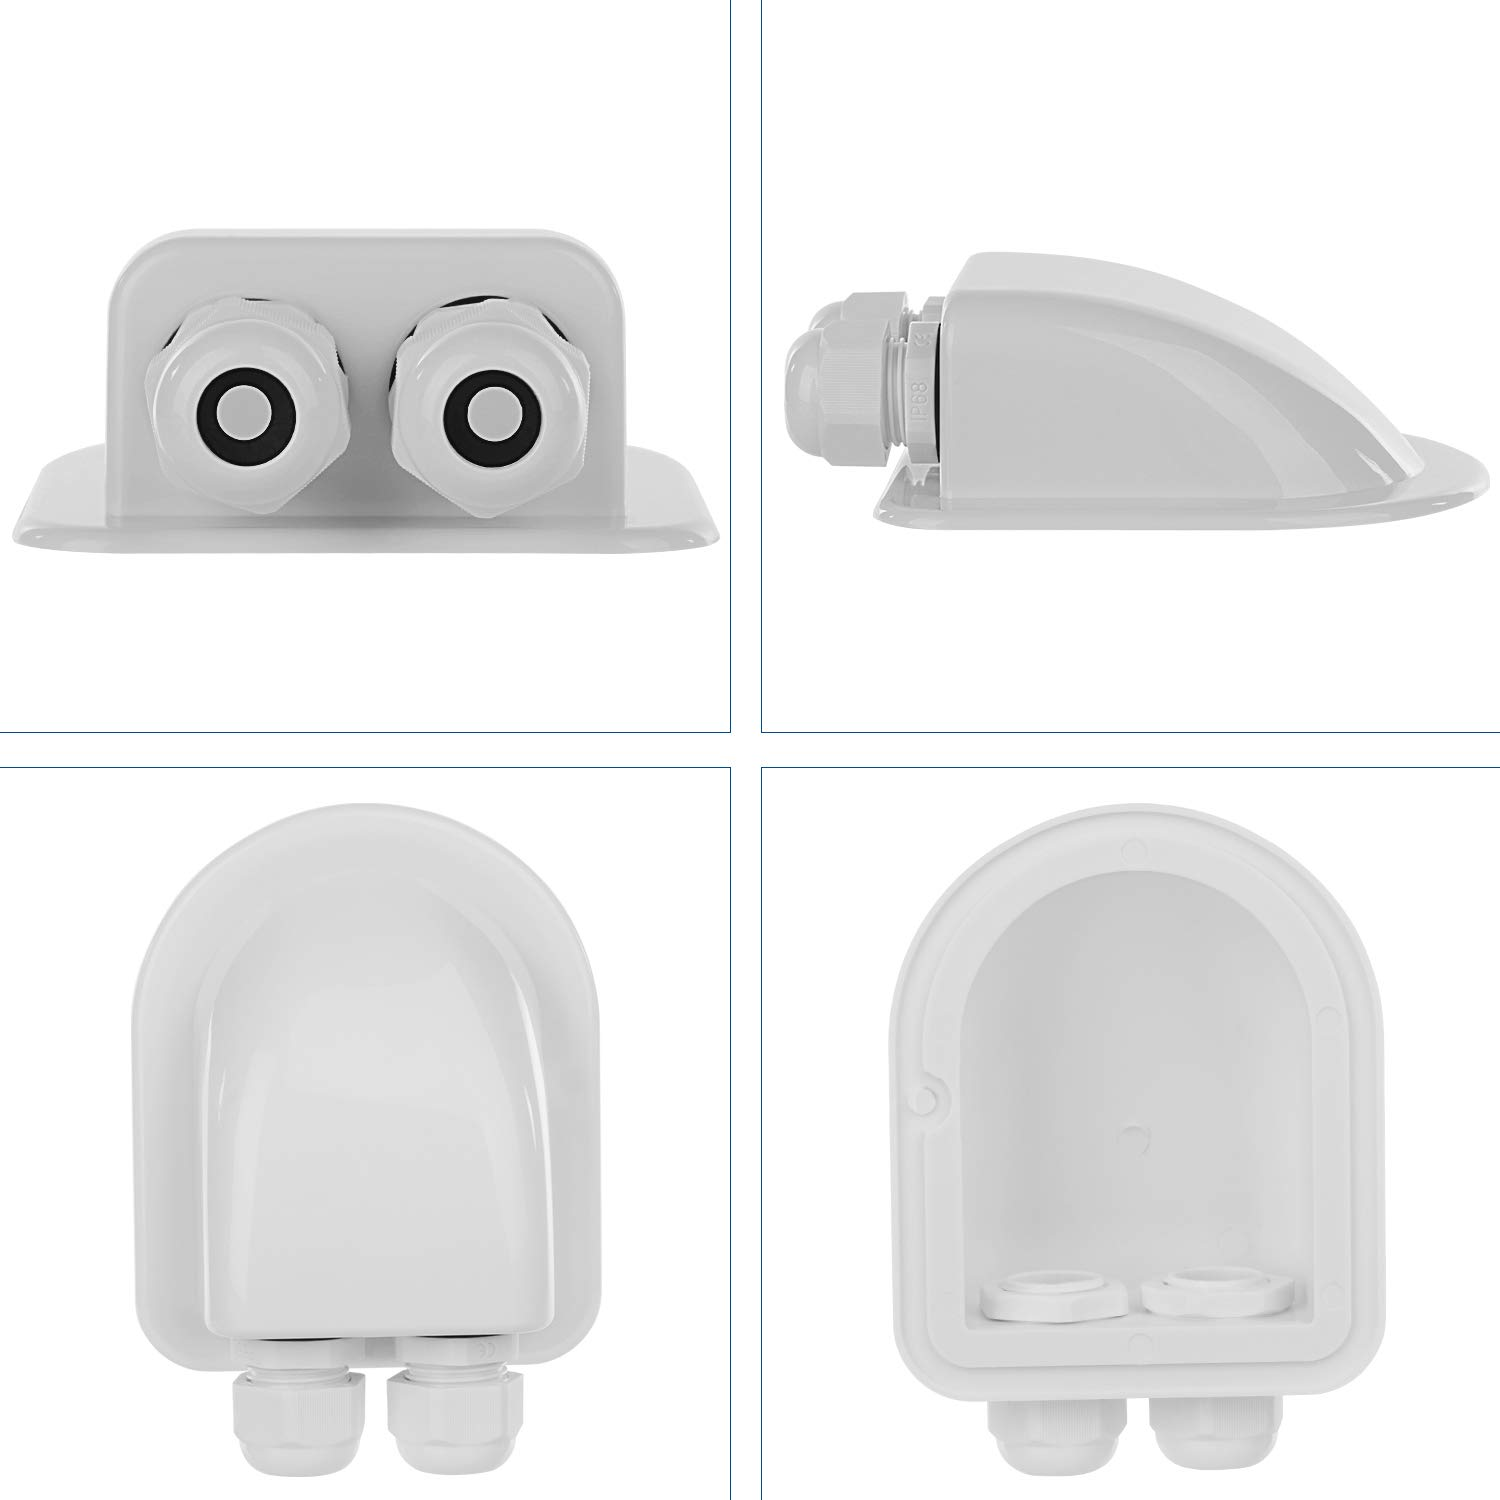 White Fit for 6mm to 12mm Cable Caravan 2 Pack Mountable Weather Resistant Sealing Box for Solar Panels of RV Restmo IP68 Waterproof Solar Double Cable Entry Gland Cabin and More Boat Marine